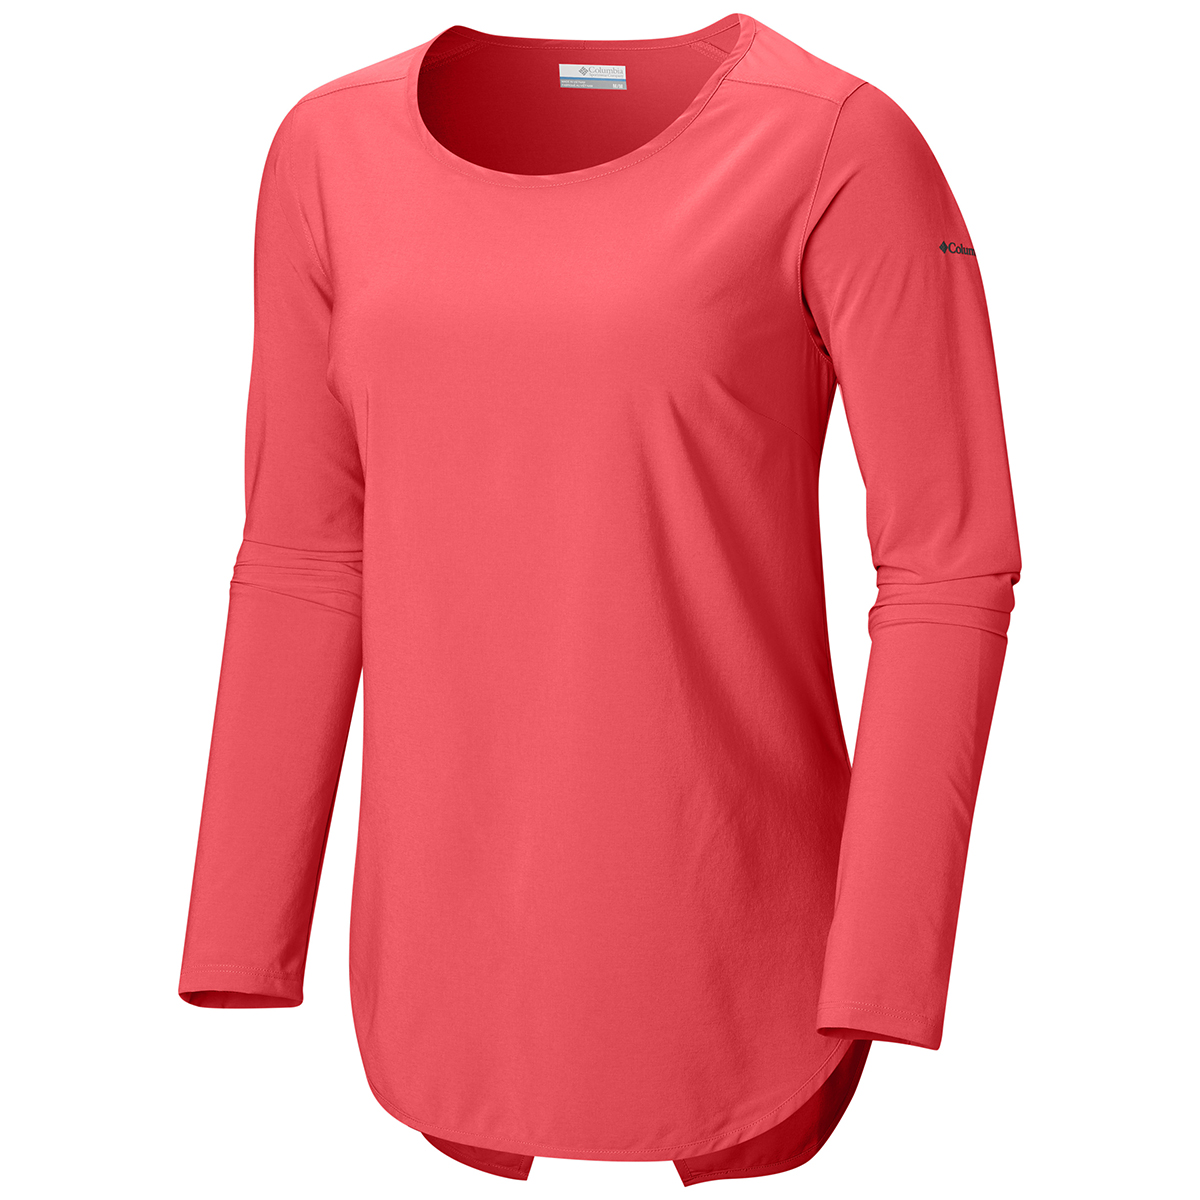 Columbia Women's Place To Place Long-Sleeve Sun Shirt - Red, S